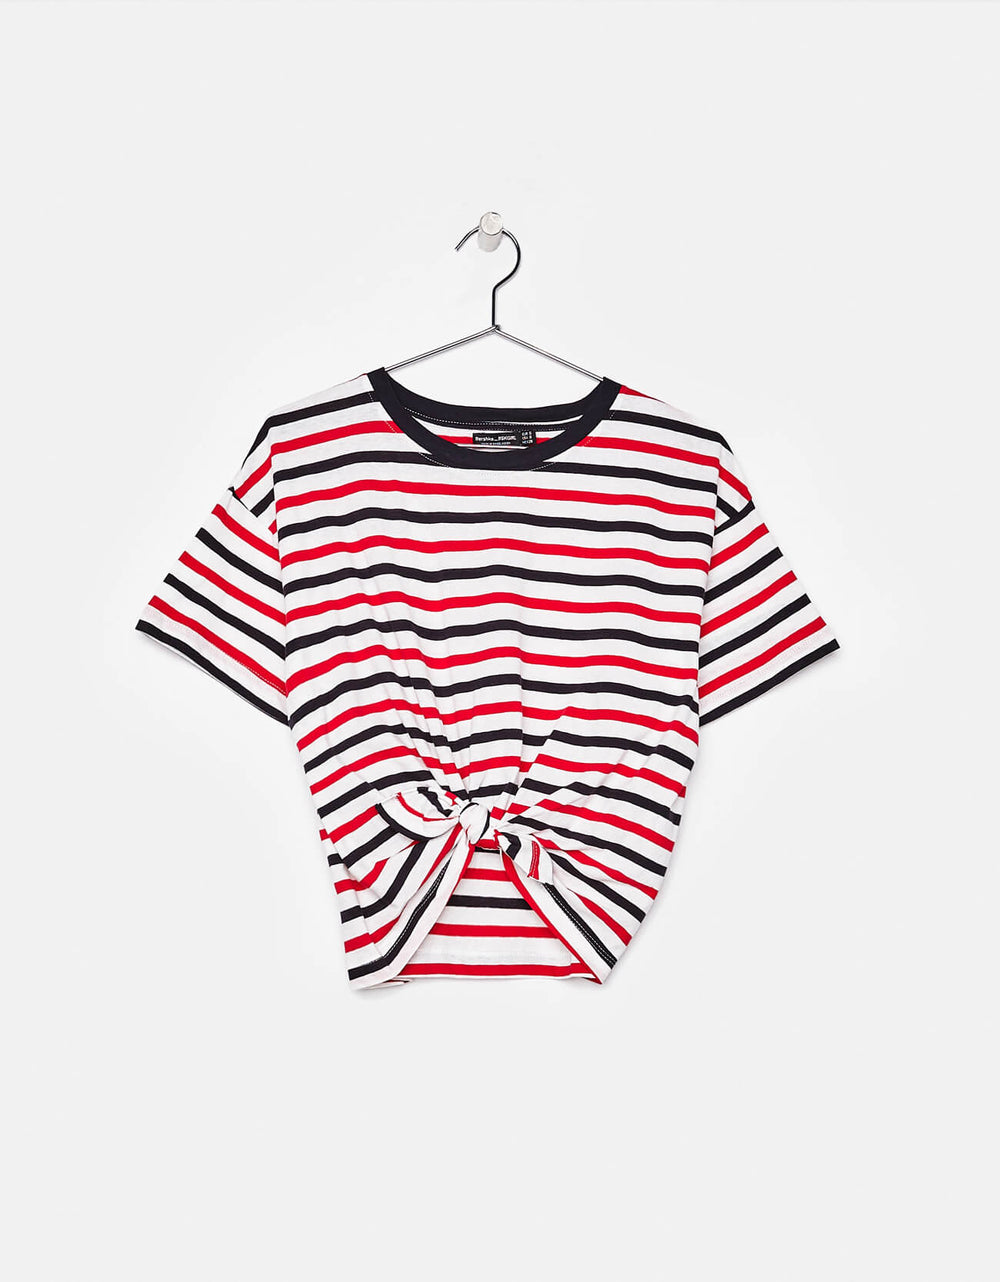 Jersey Graphic Tee Dolce